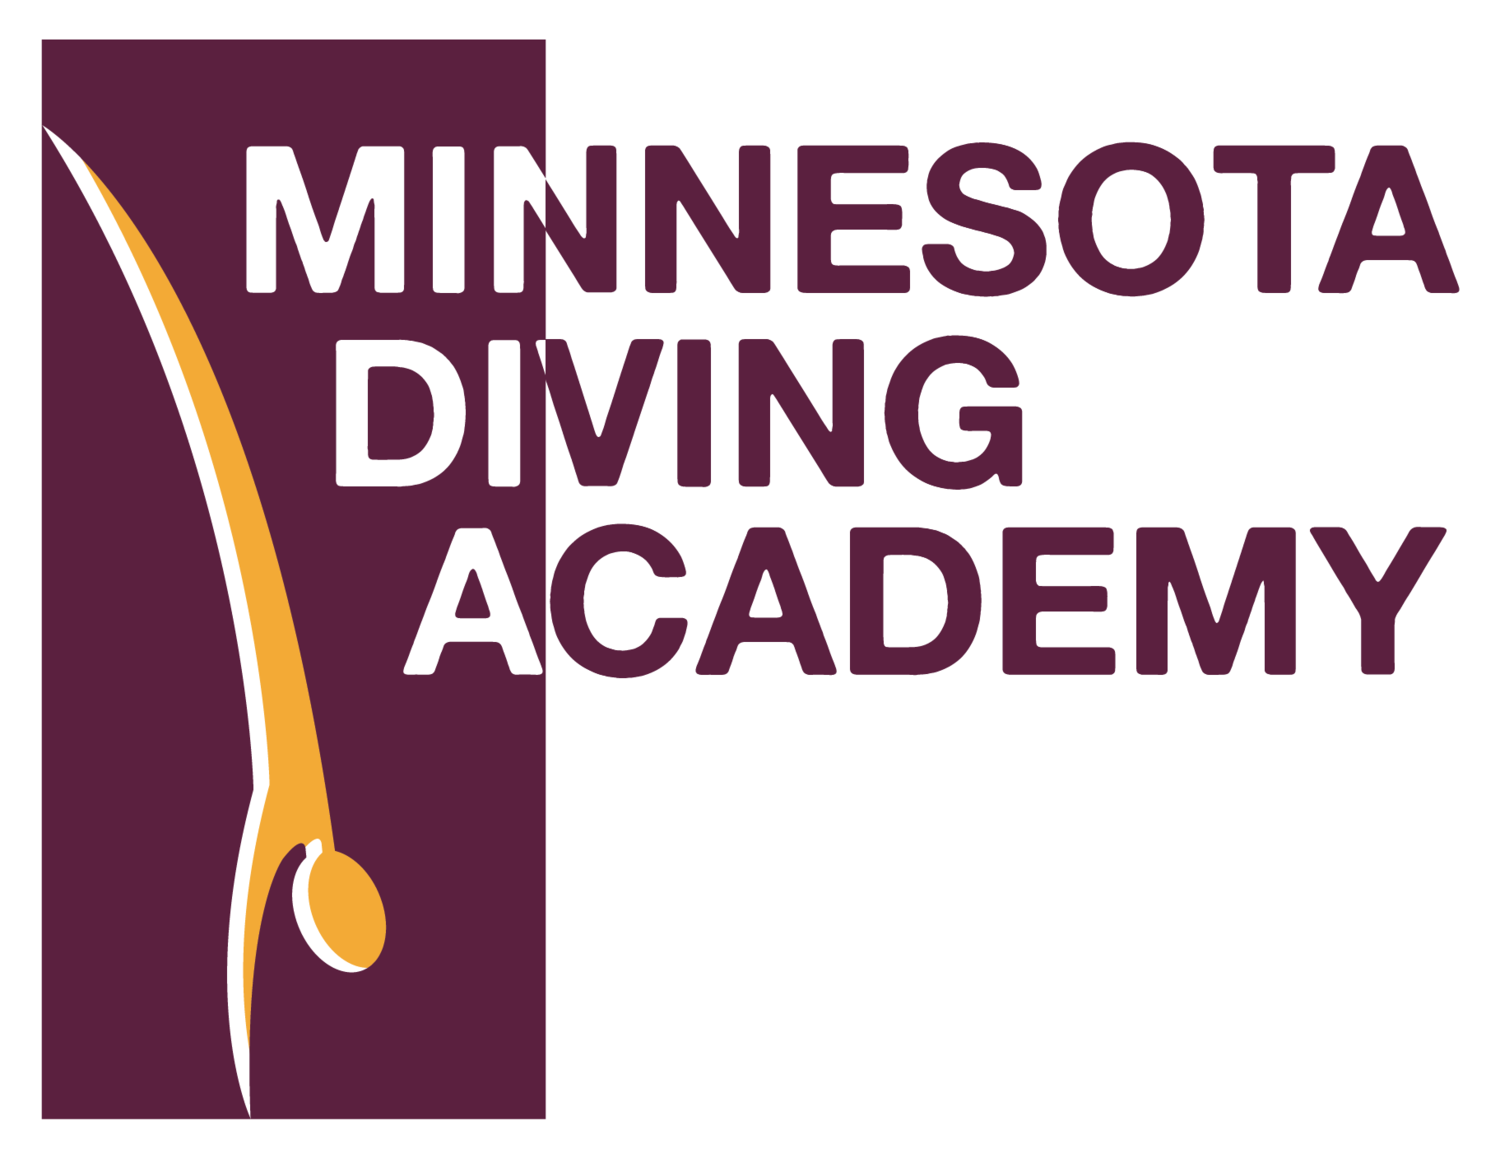 Minnesota Diving Academy